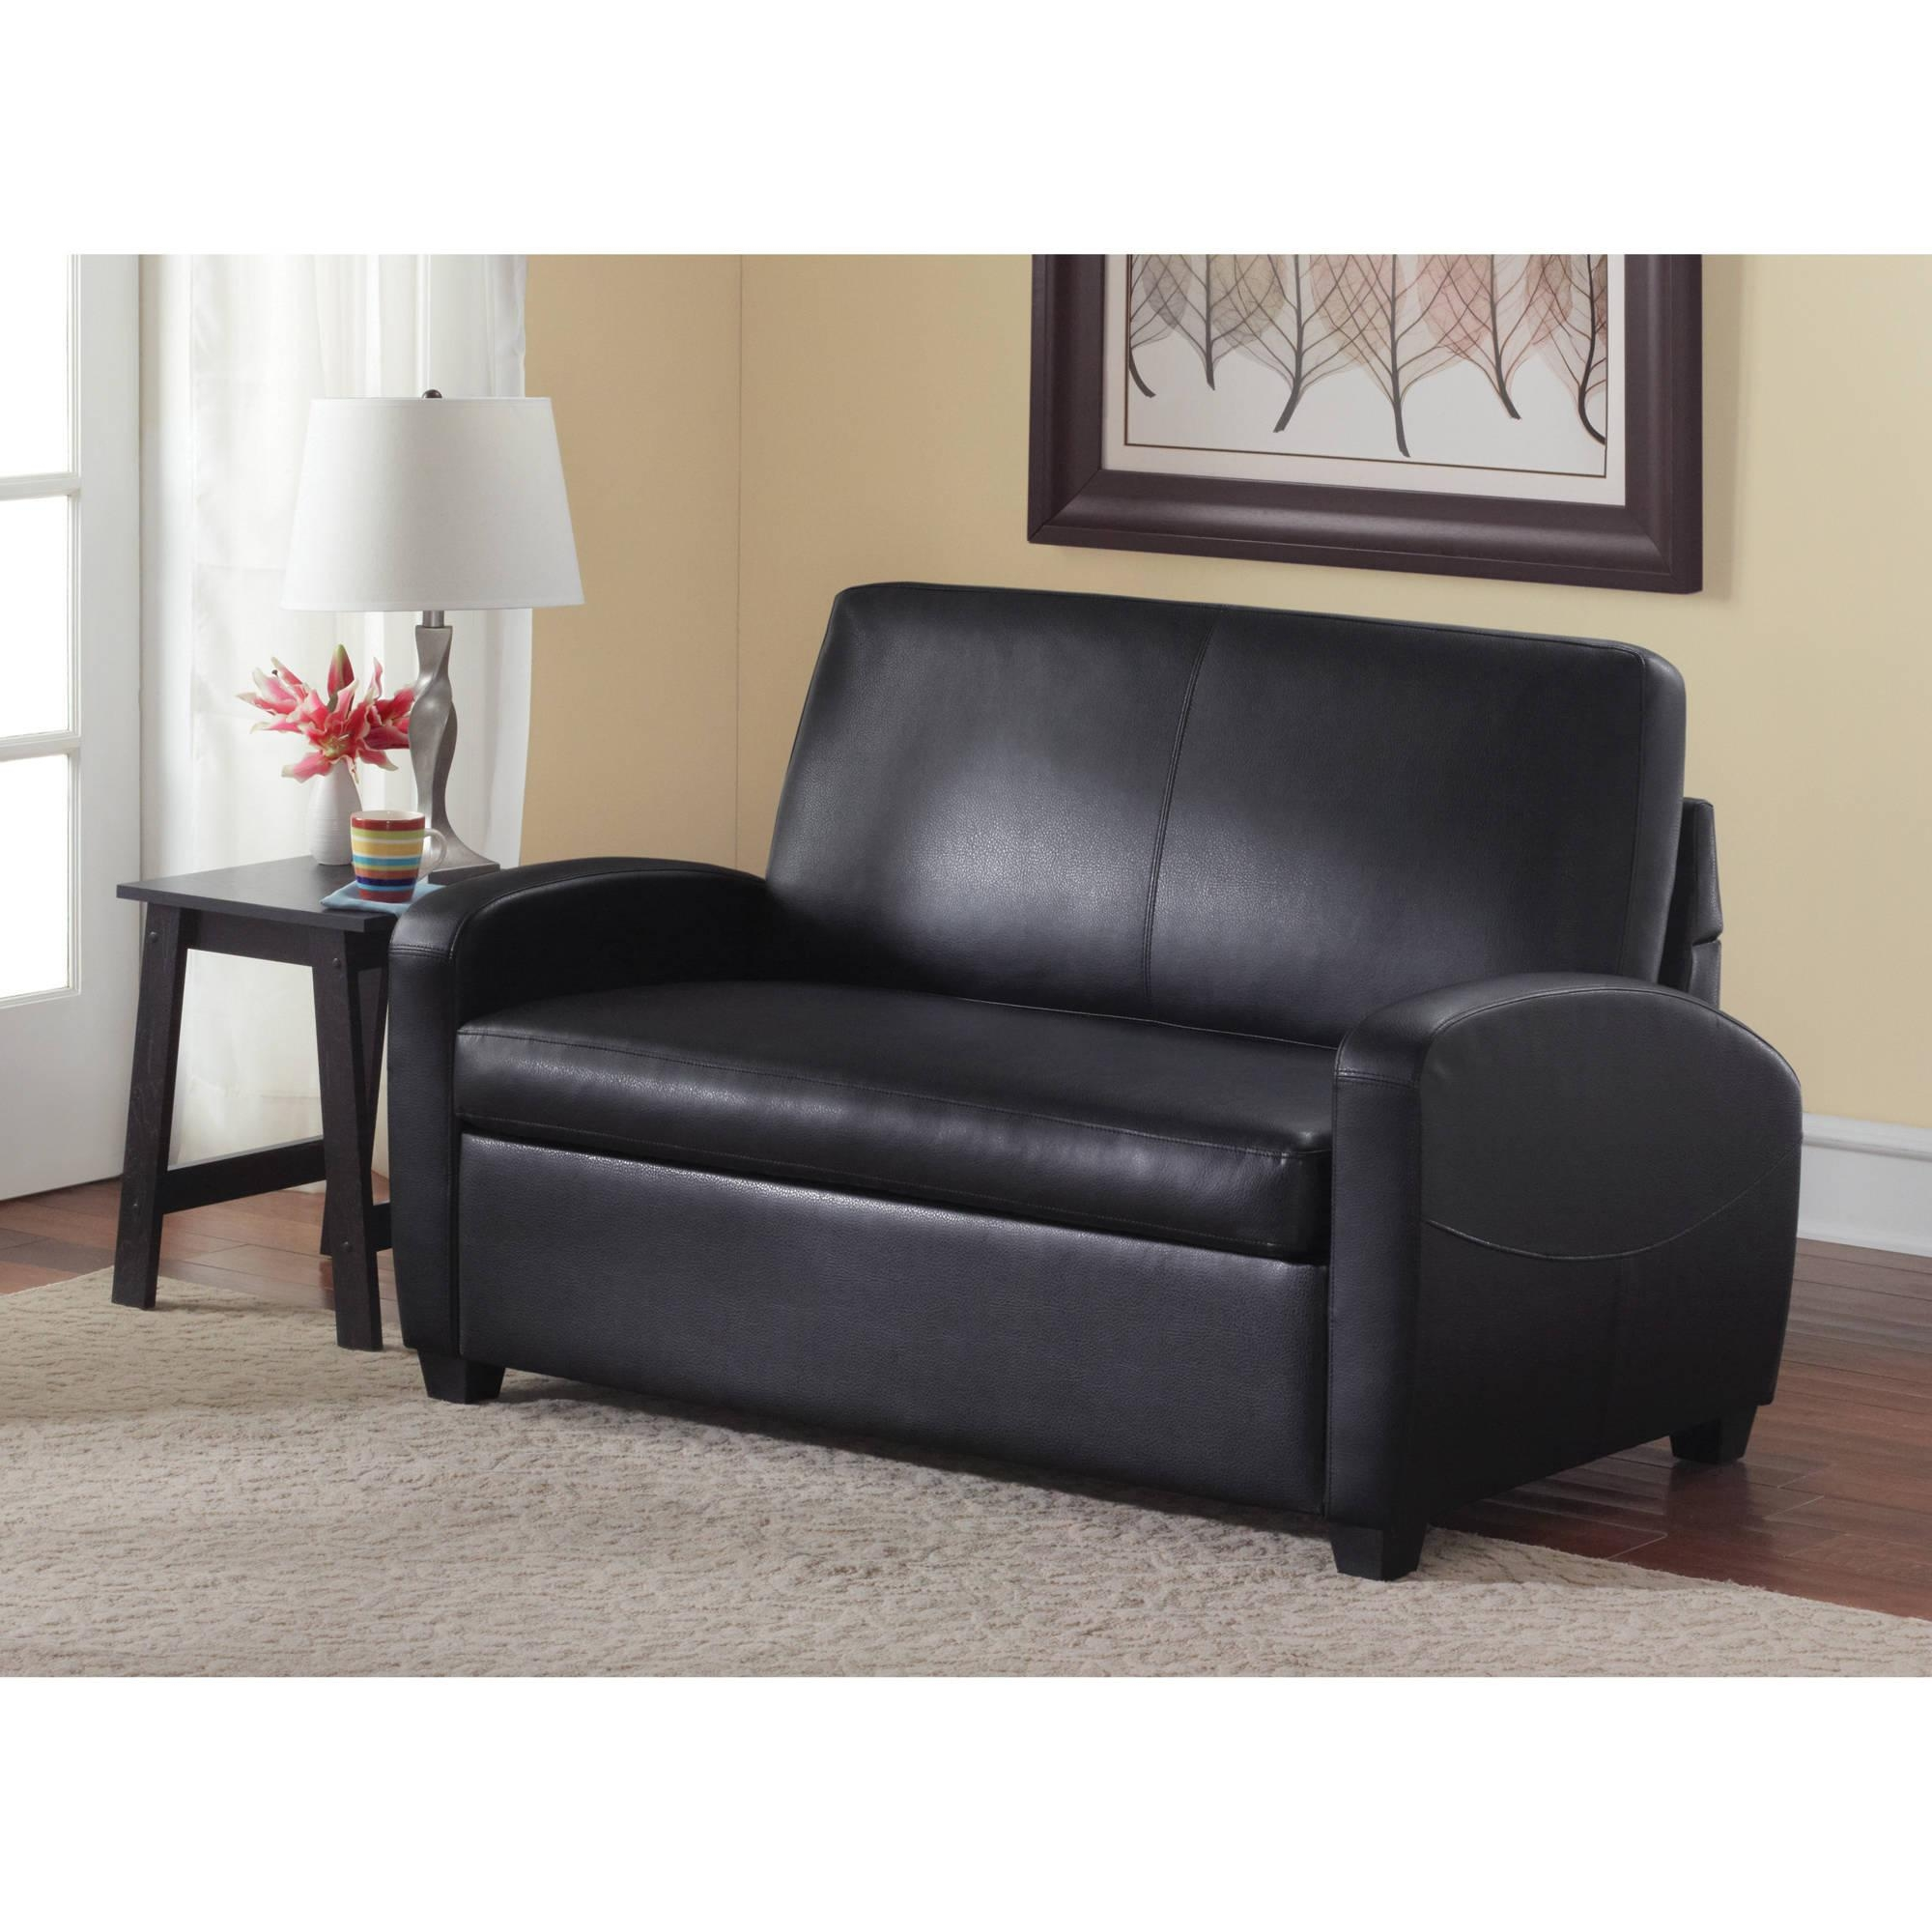 Furniture: Walmart Sofas | Sofa Bed Costco | Leather Futon Walmart Pertaining To City Sofa Beds (View 15 of 20)